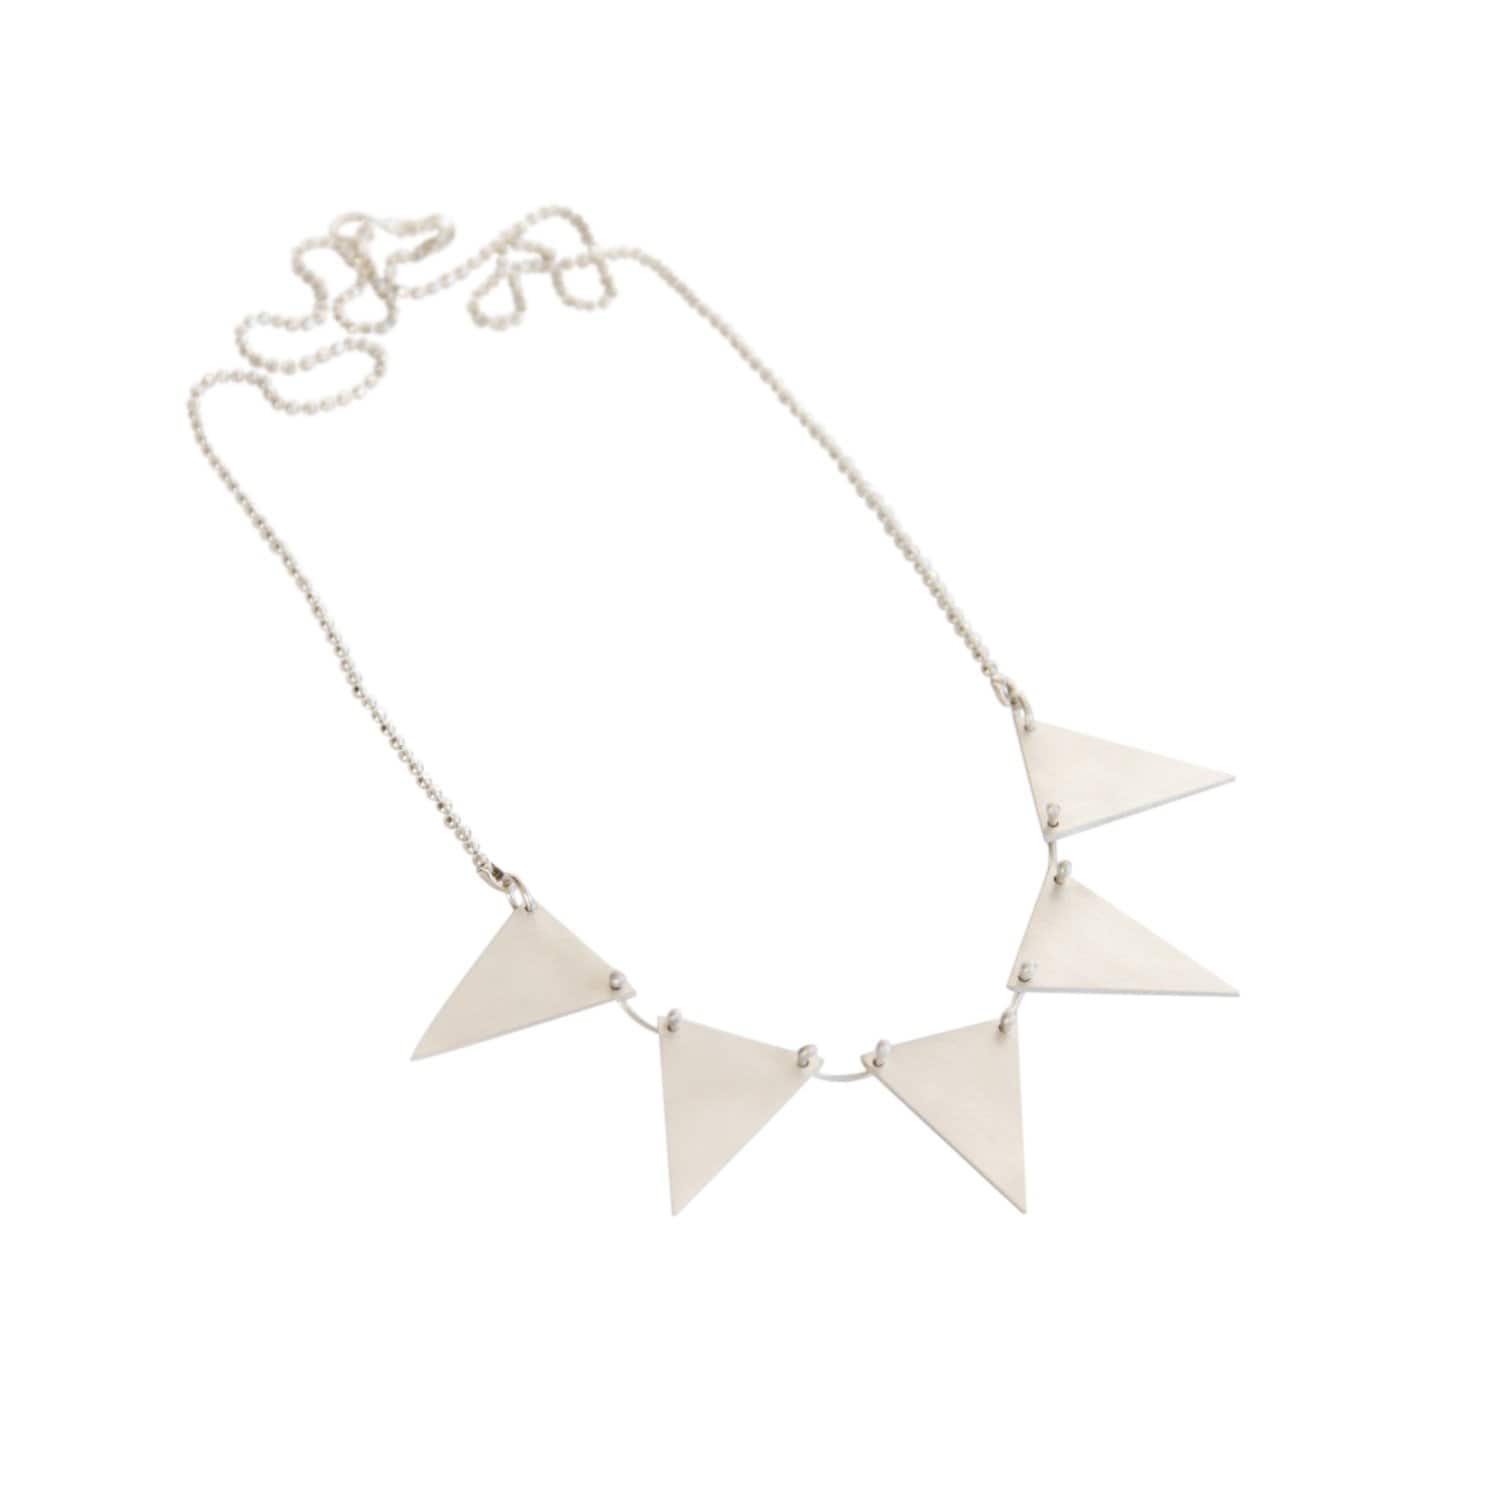 tothemetal jewelry Triangle Garland Silver Necklace